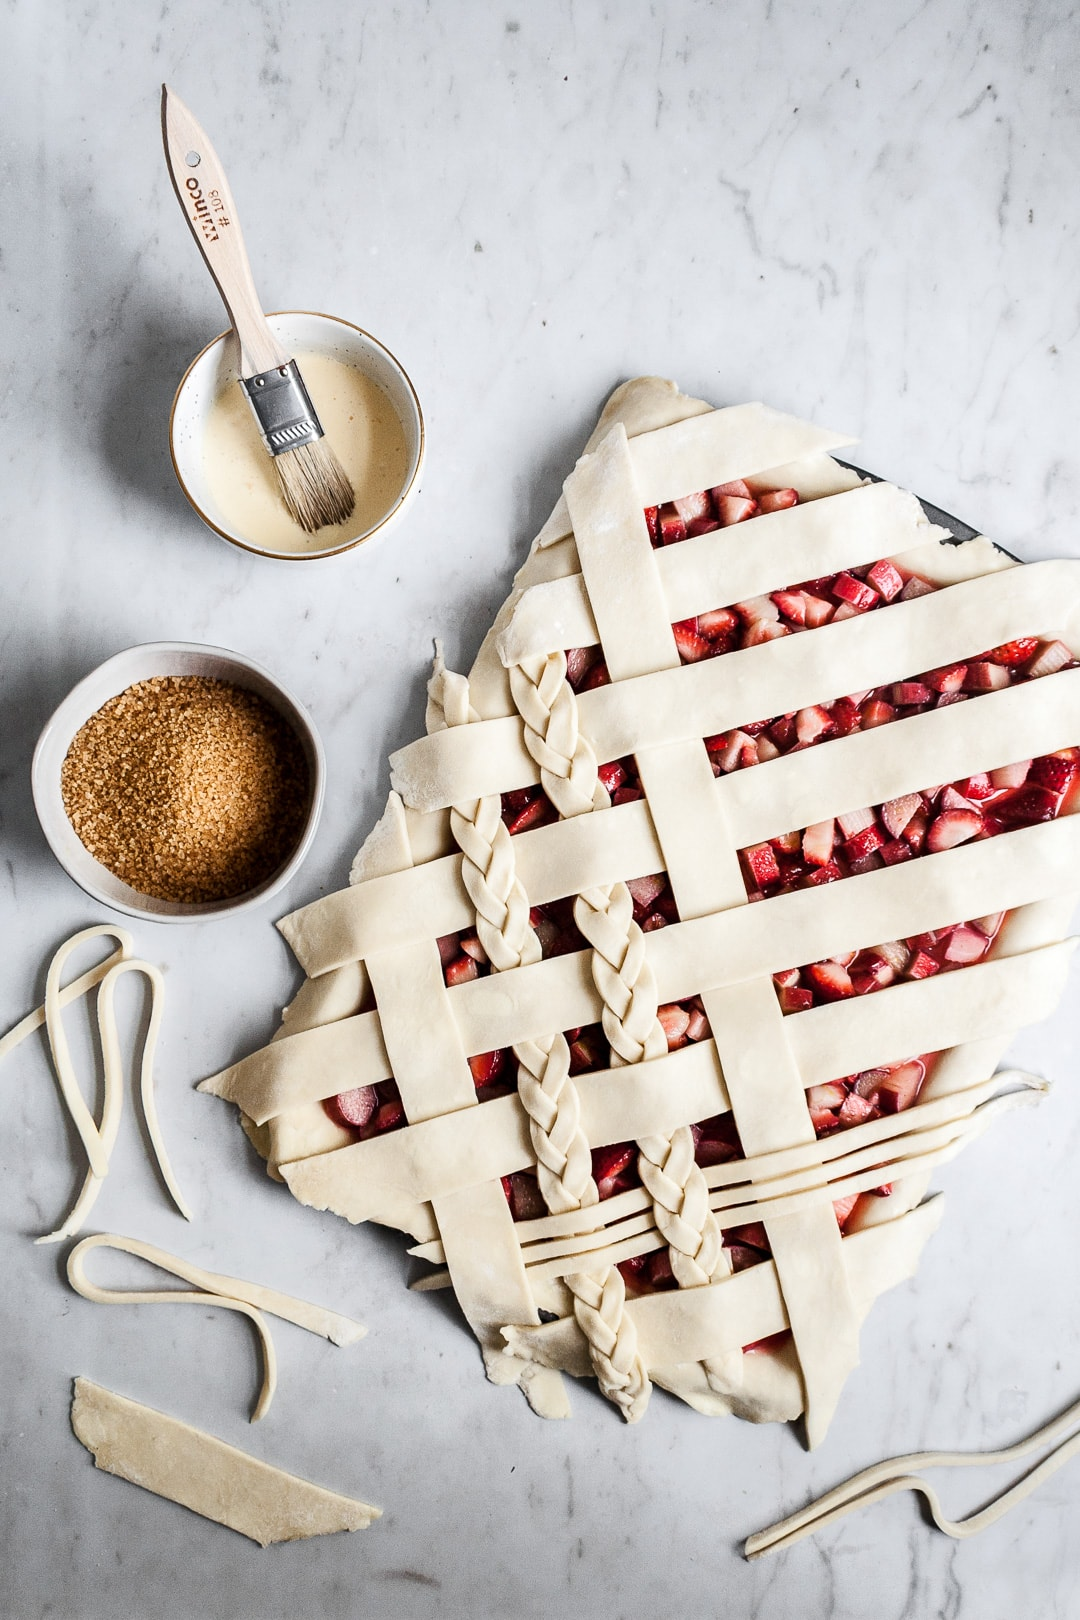 Top view of unbaked strawberry rhubarb slab pie with angled woven lattice crust with braids on a marble background and bowls of egg wash and coarse sugar nearby